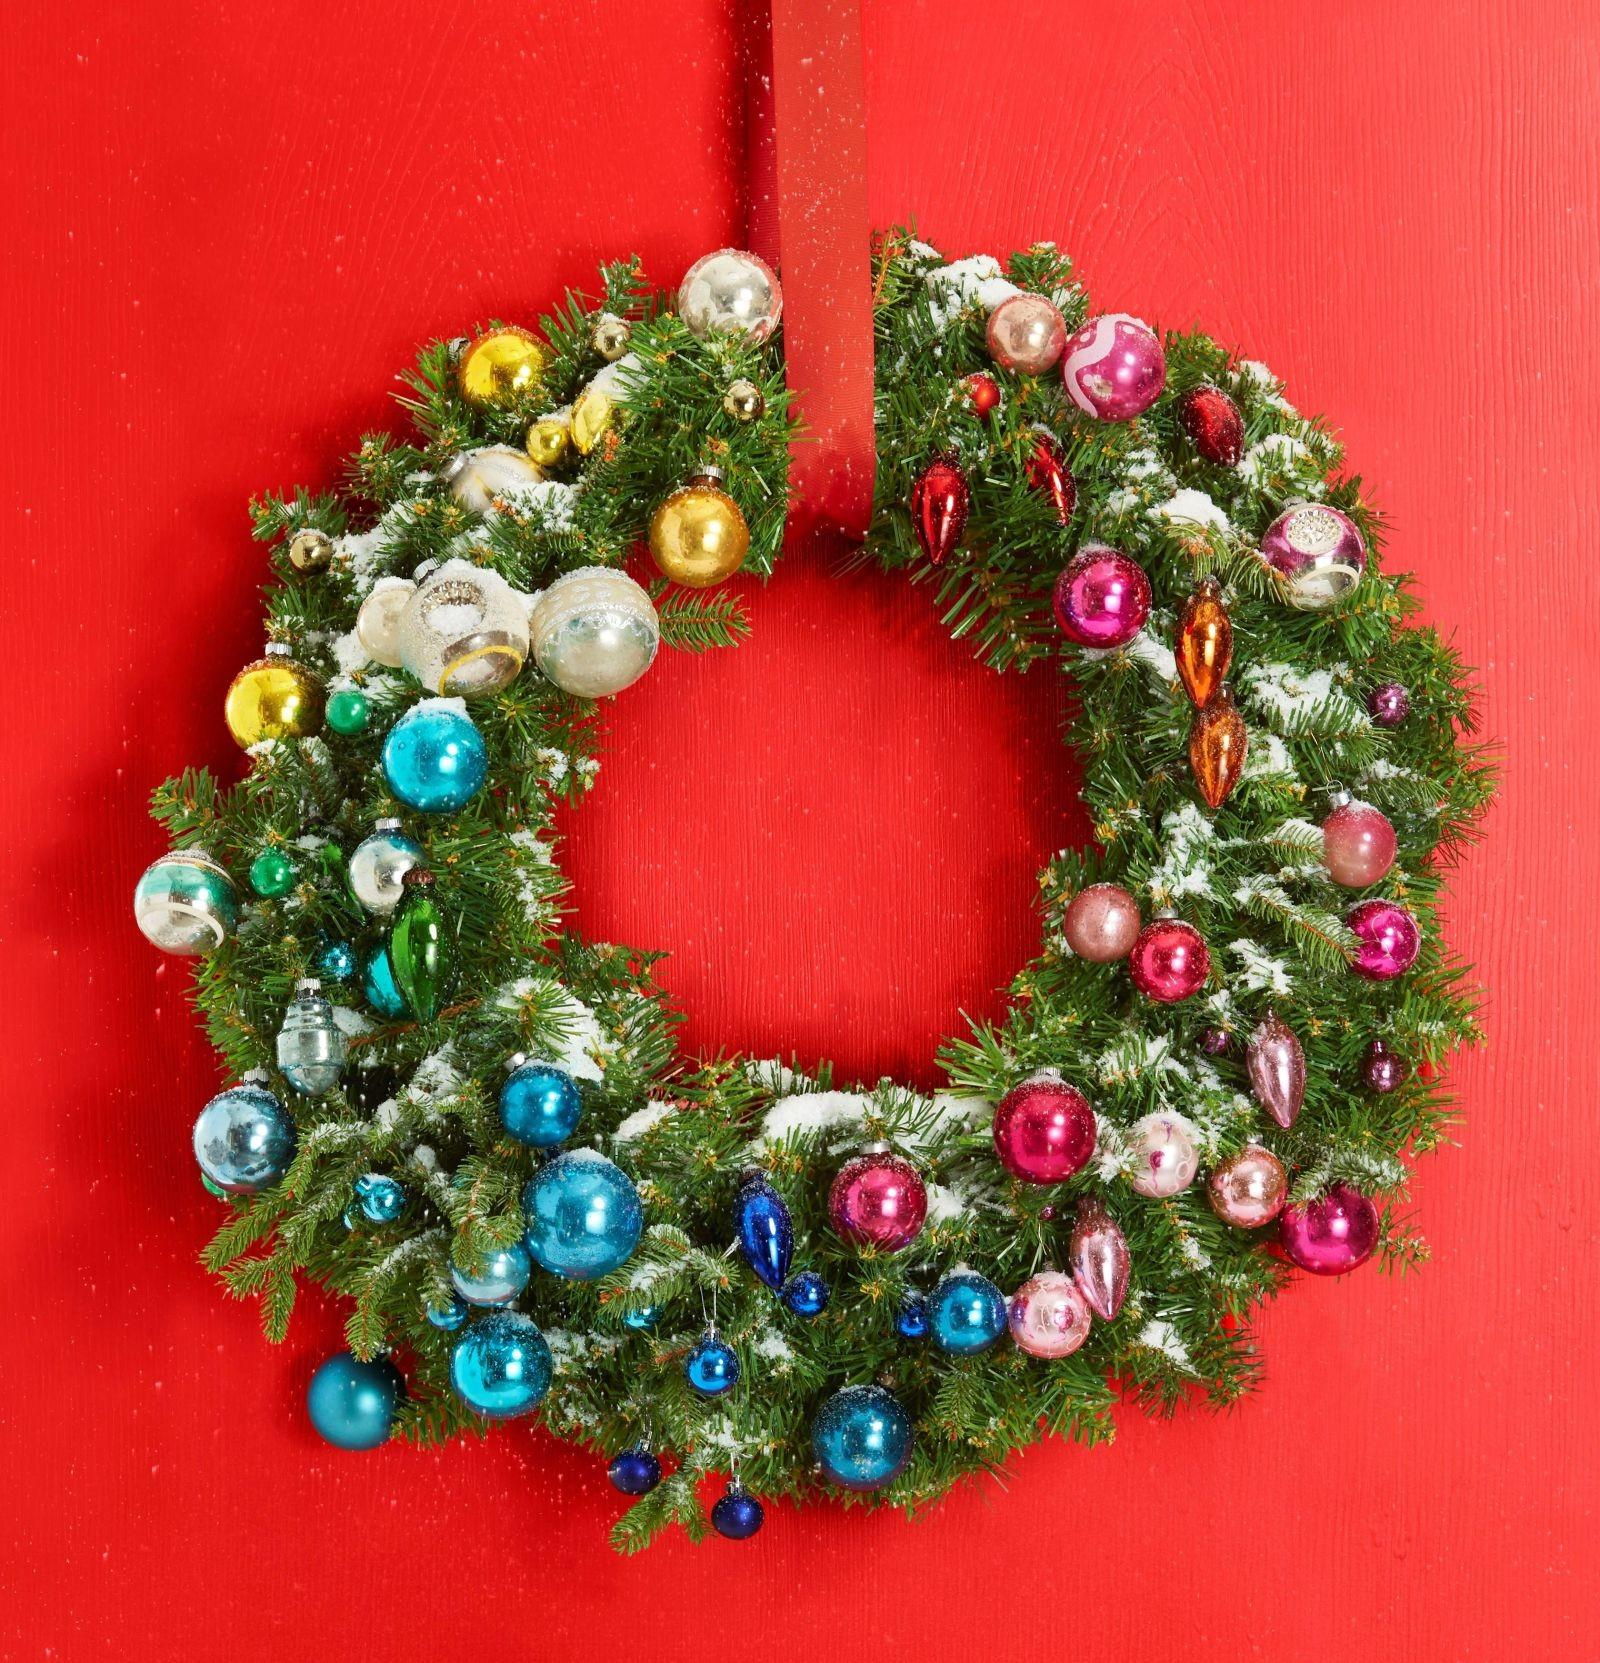 Gorgeous Wreaths Diy Holiday Christmas Wreath